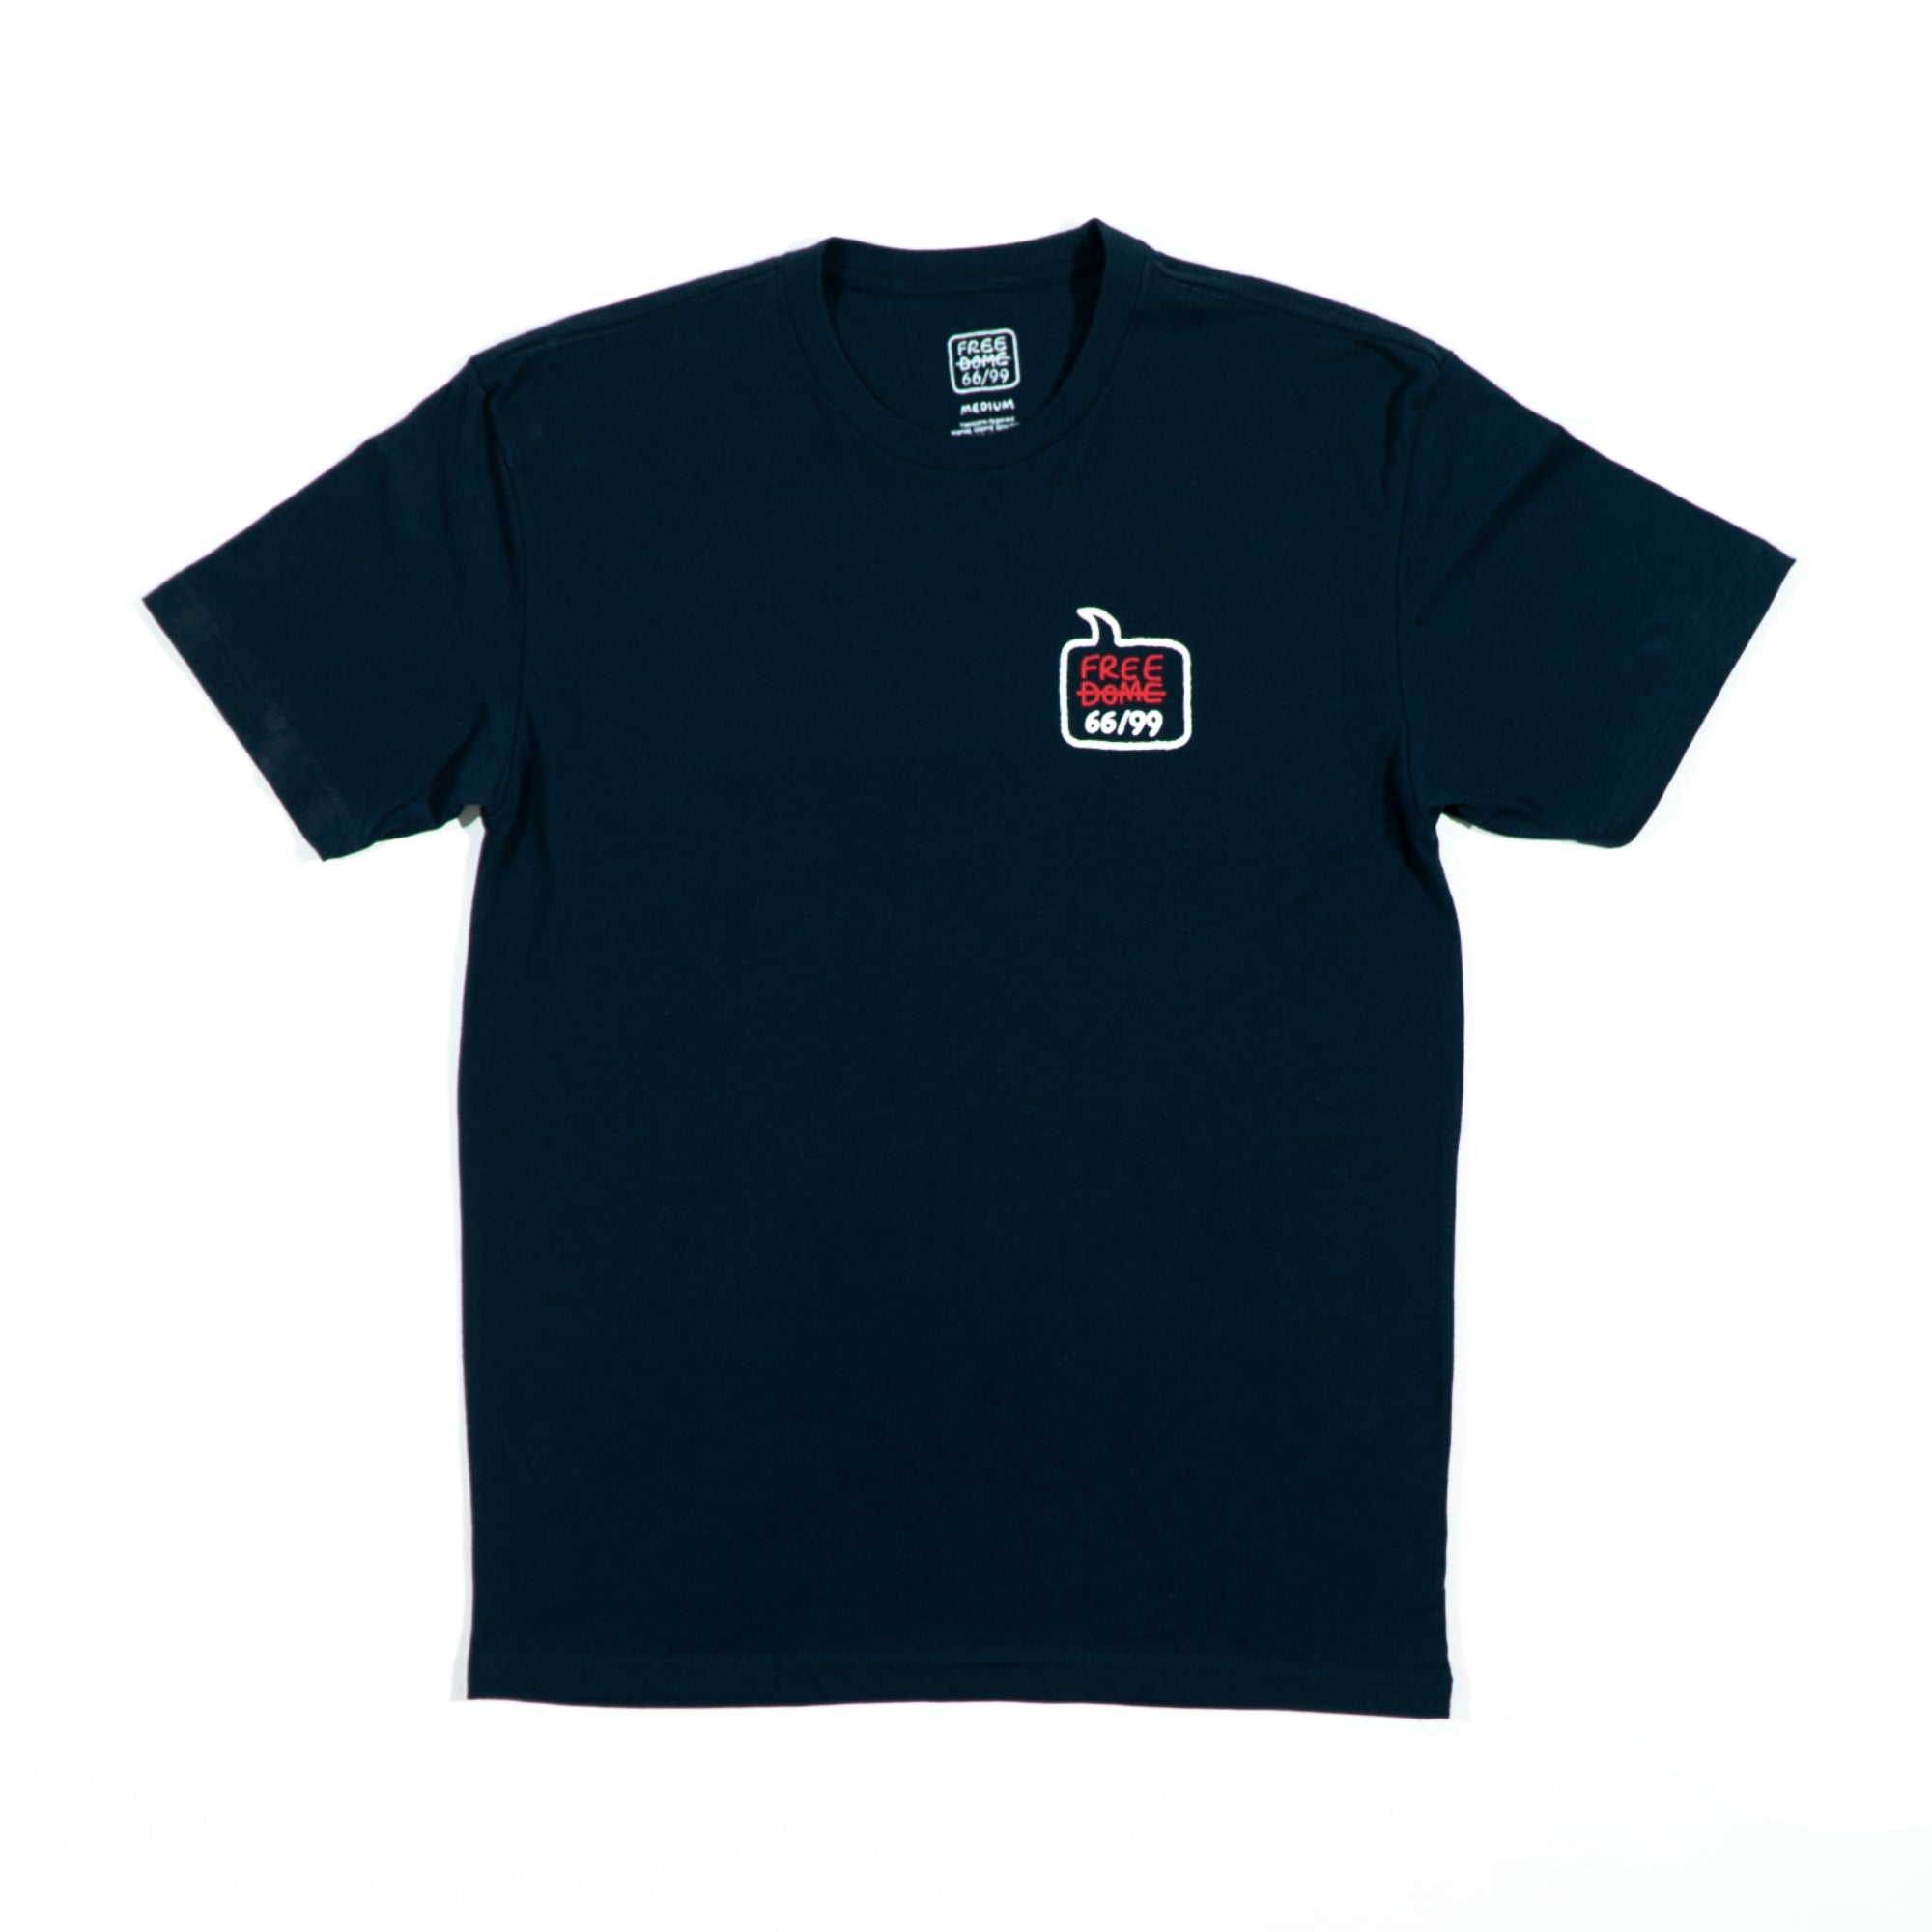 LOST ART x FREE DOME Tee 66/99 </br> Navy